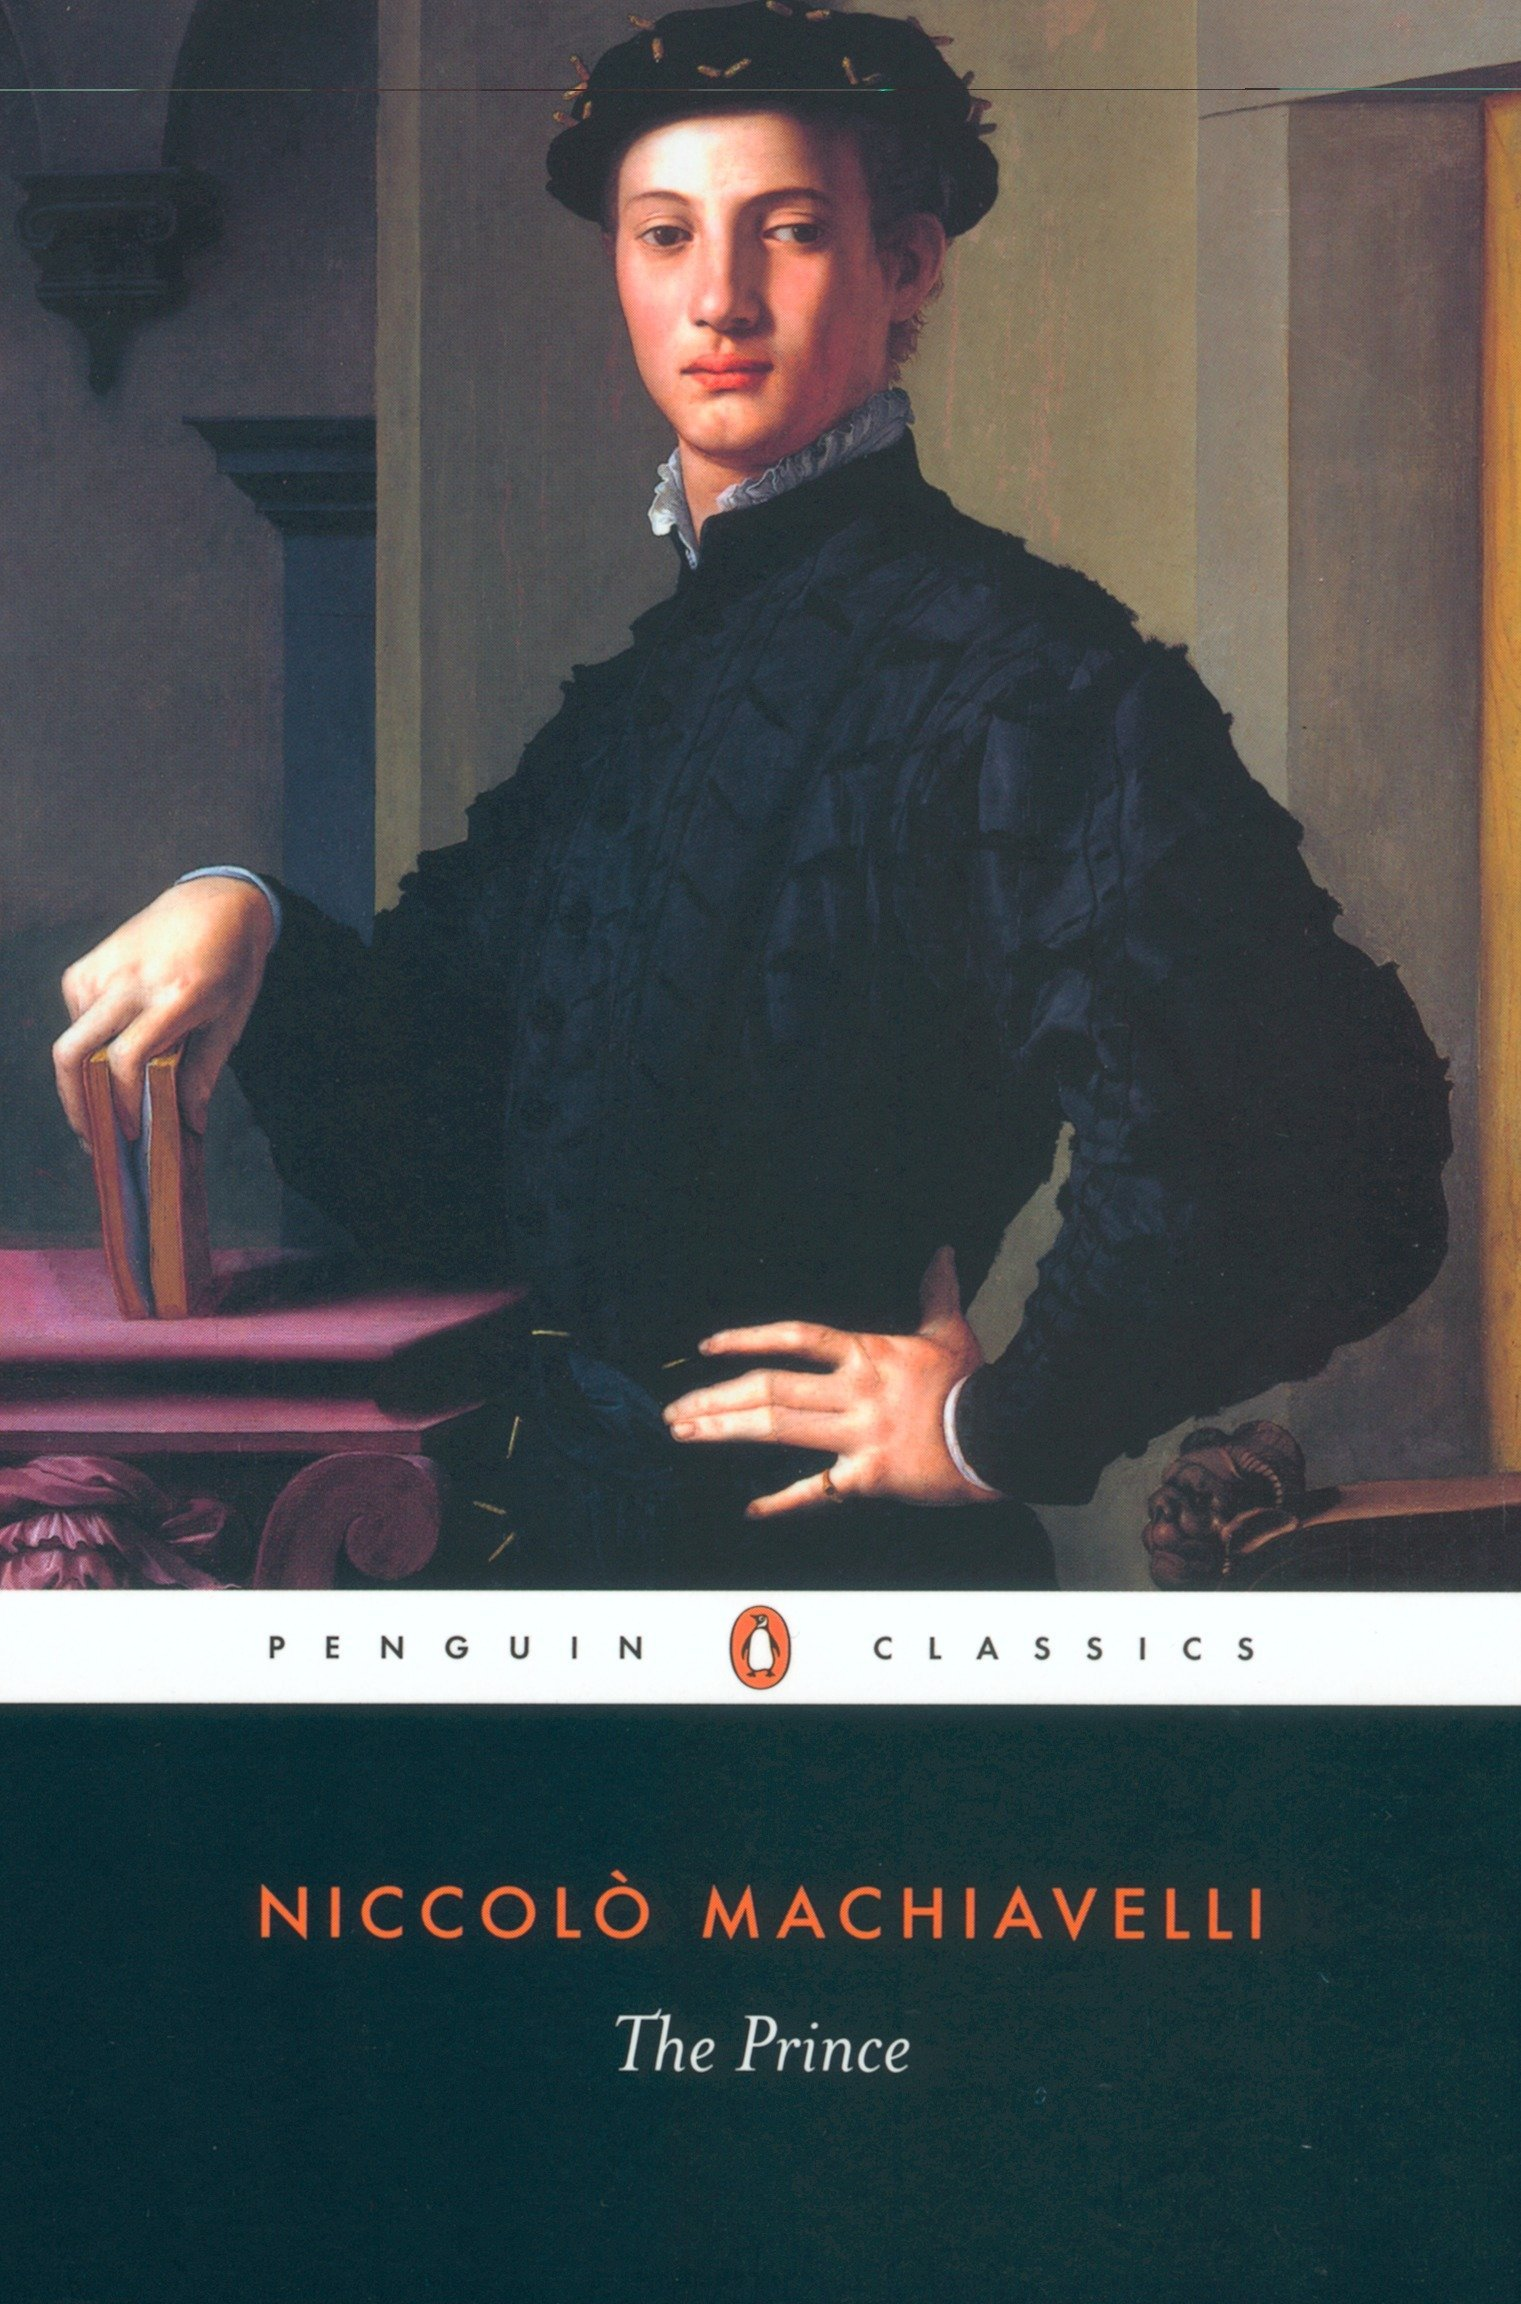 The Prince (Penguin Classics): Amazon.es: Niccolo Machiavelli, Anthony Grafton, George Bull: Libros en idiomas extranjeros